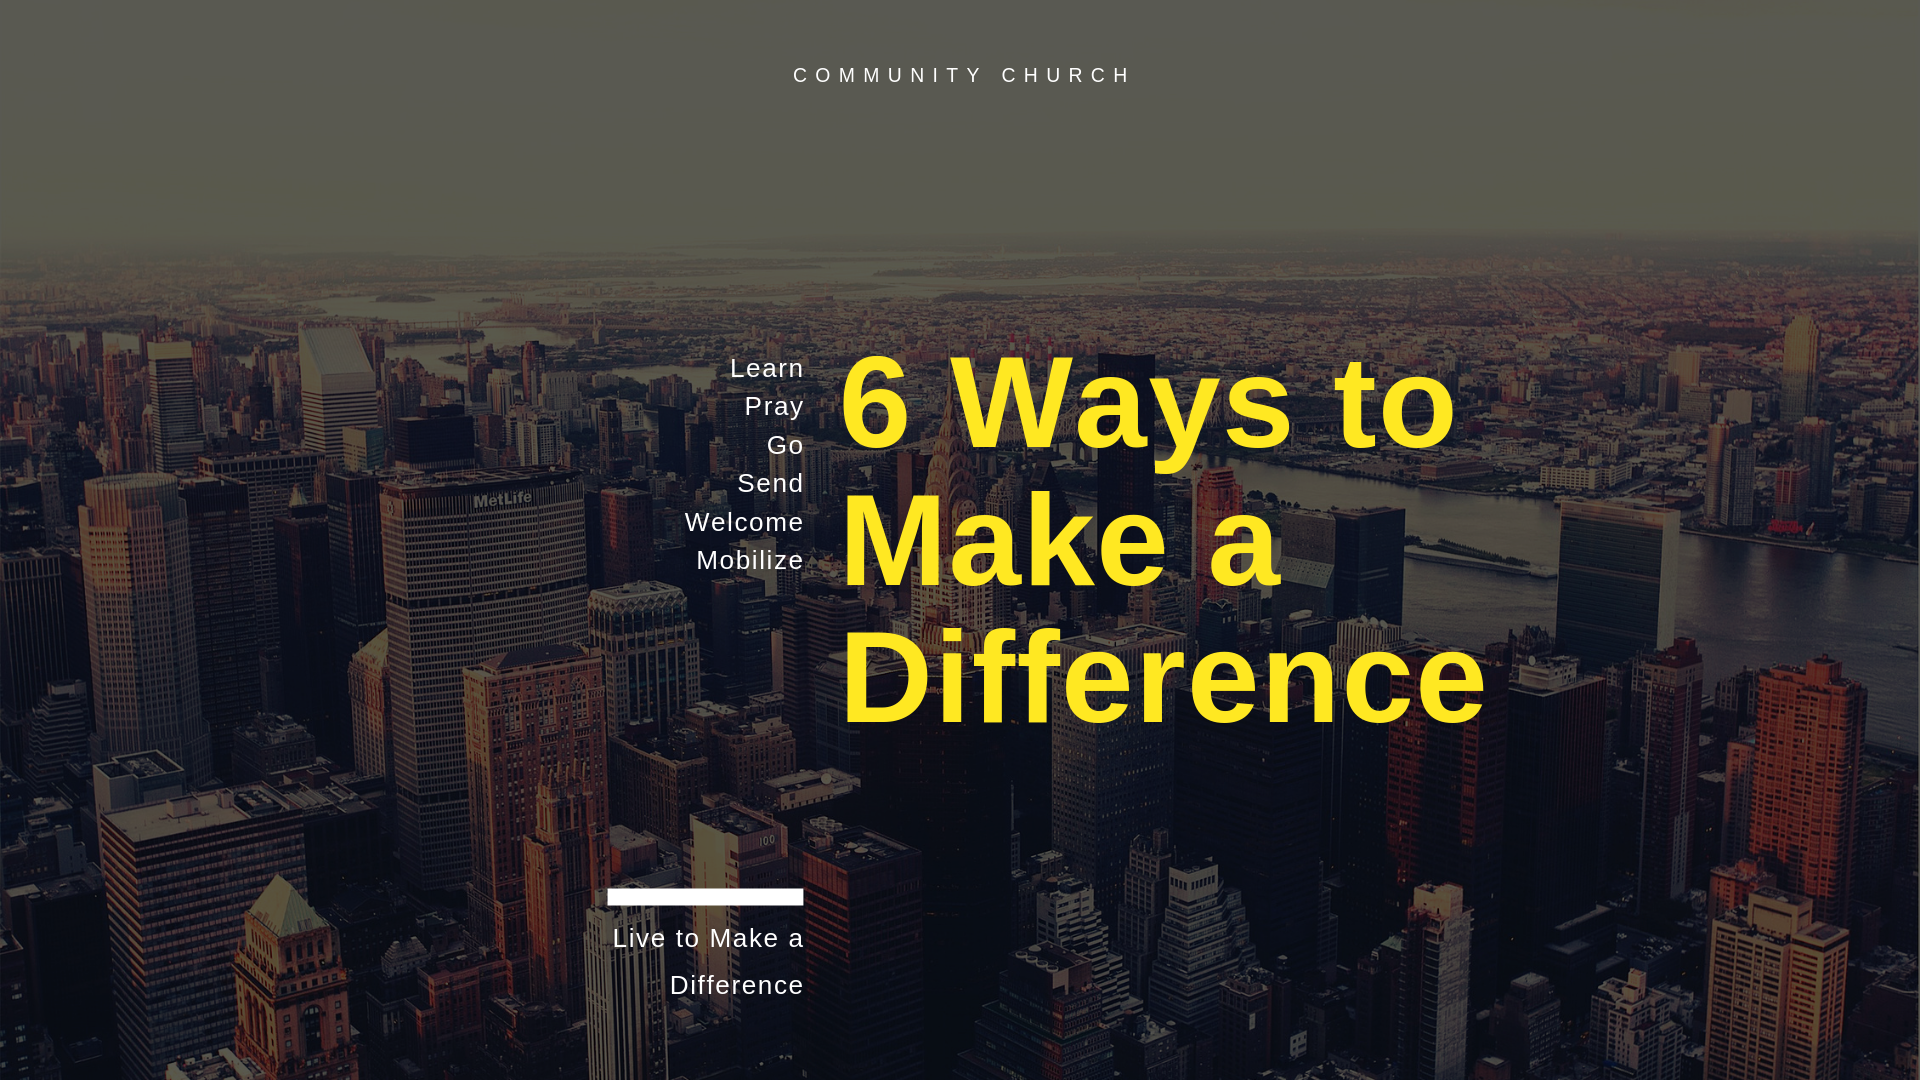 6 Ways to Live to Make a Difference.png